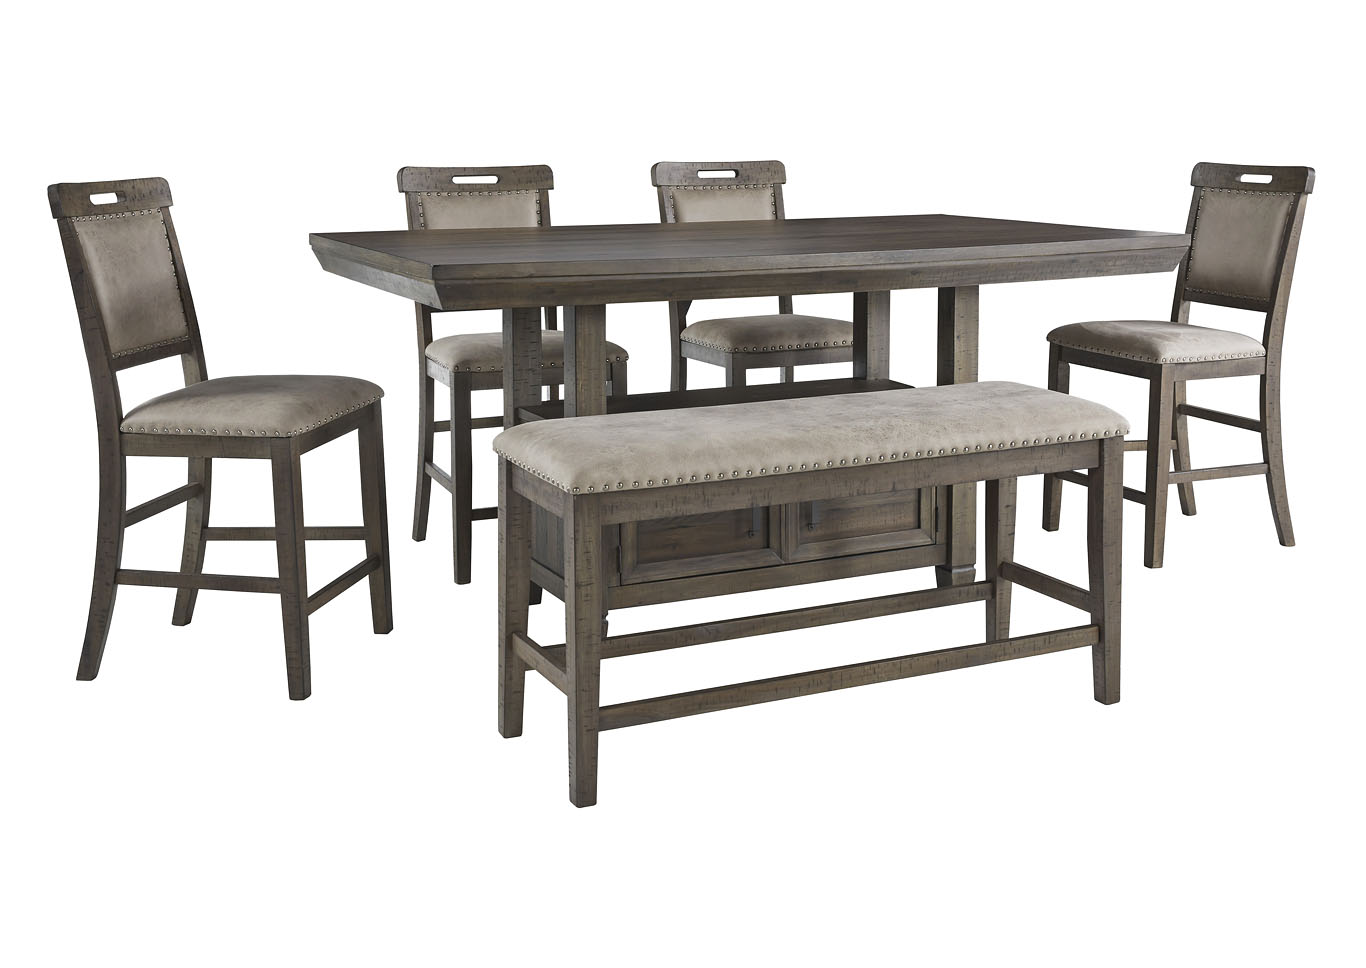 Johurst Counter Table w/4 Bar Stool and Bench